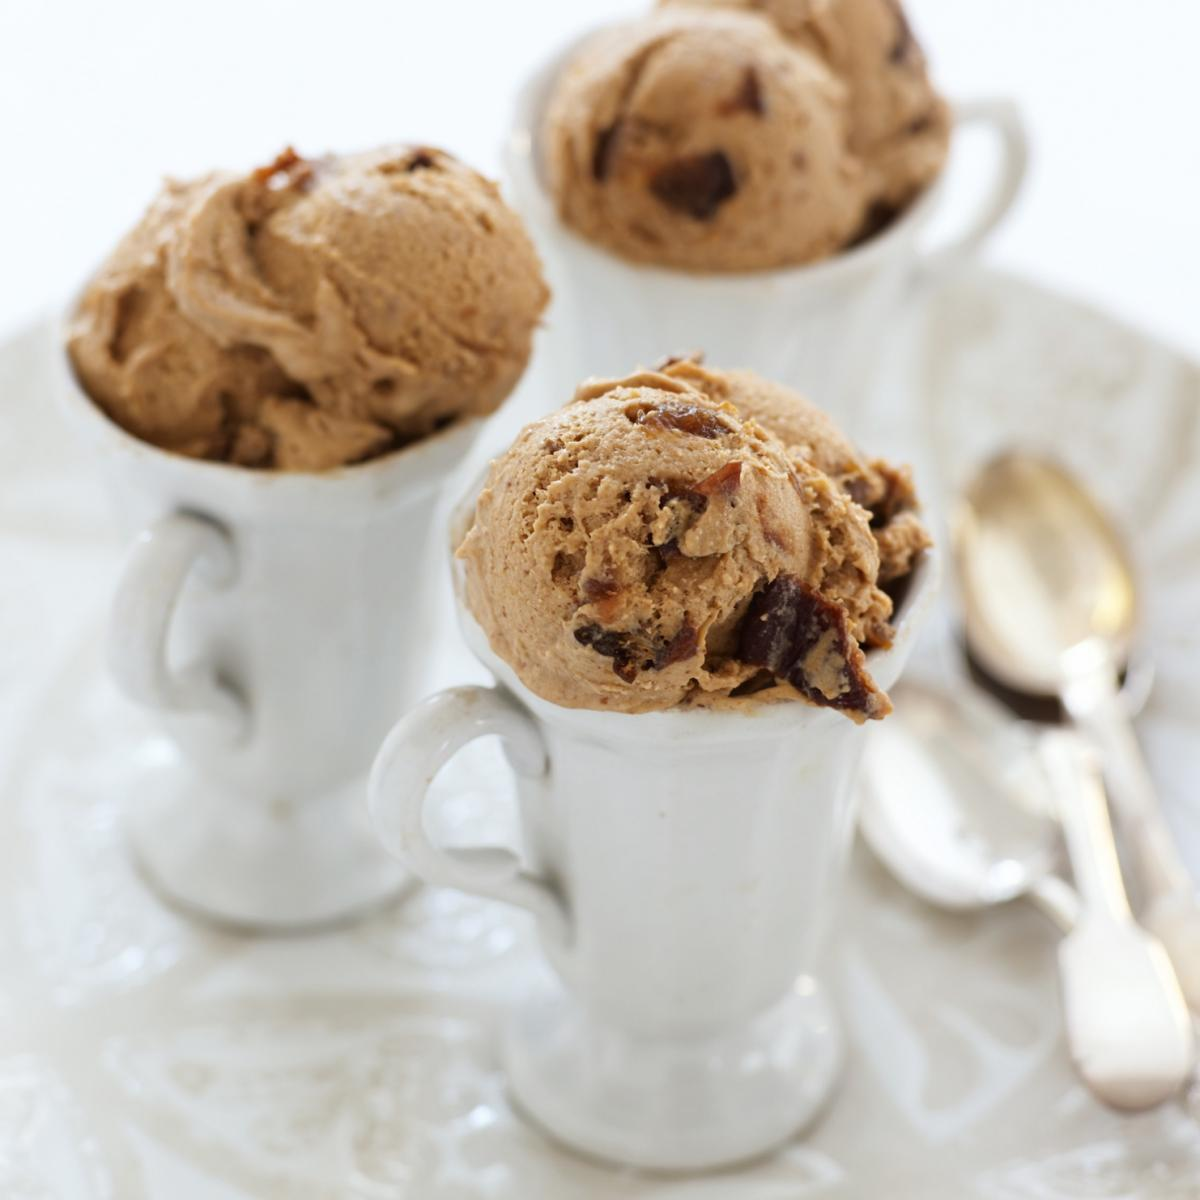 A picture of Delia's Prune and Armagnac Ice Cream recipe